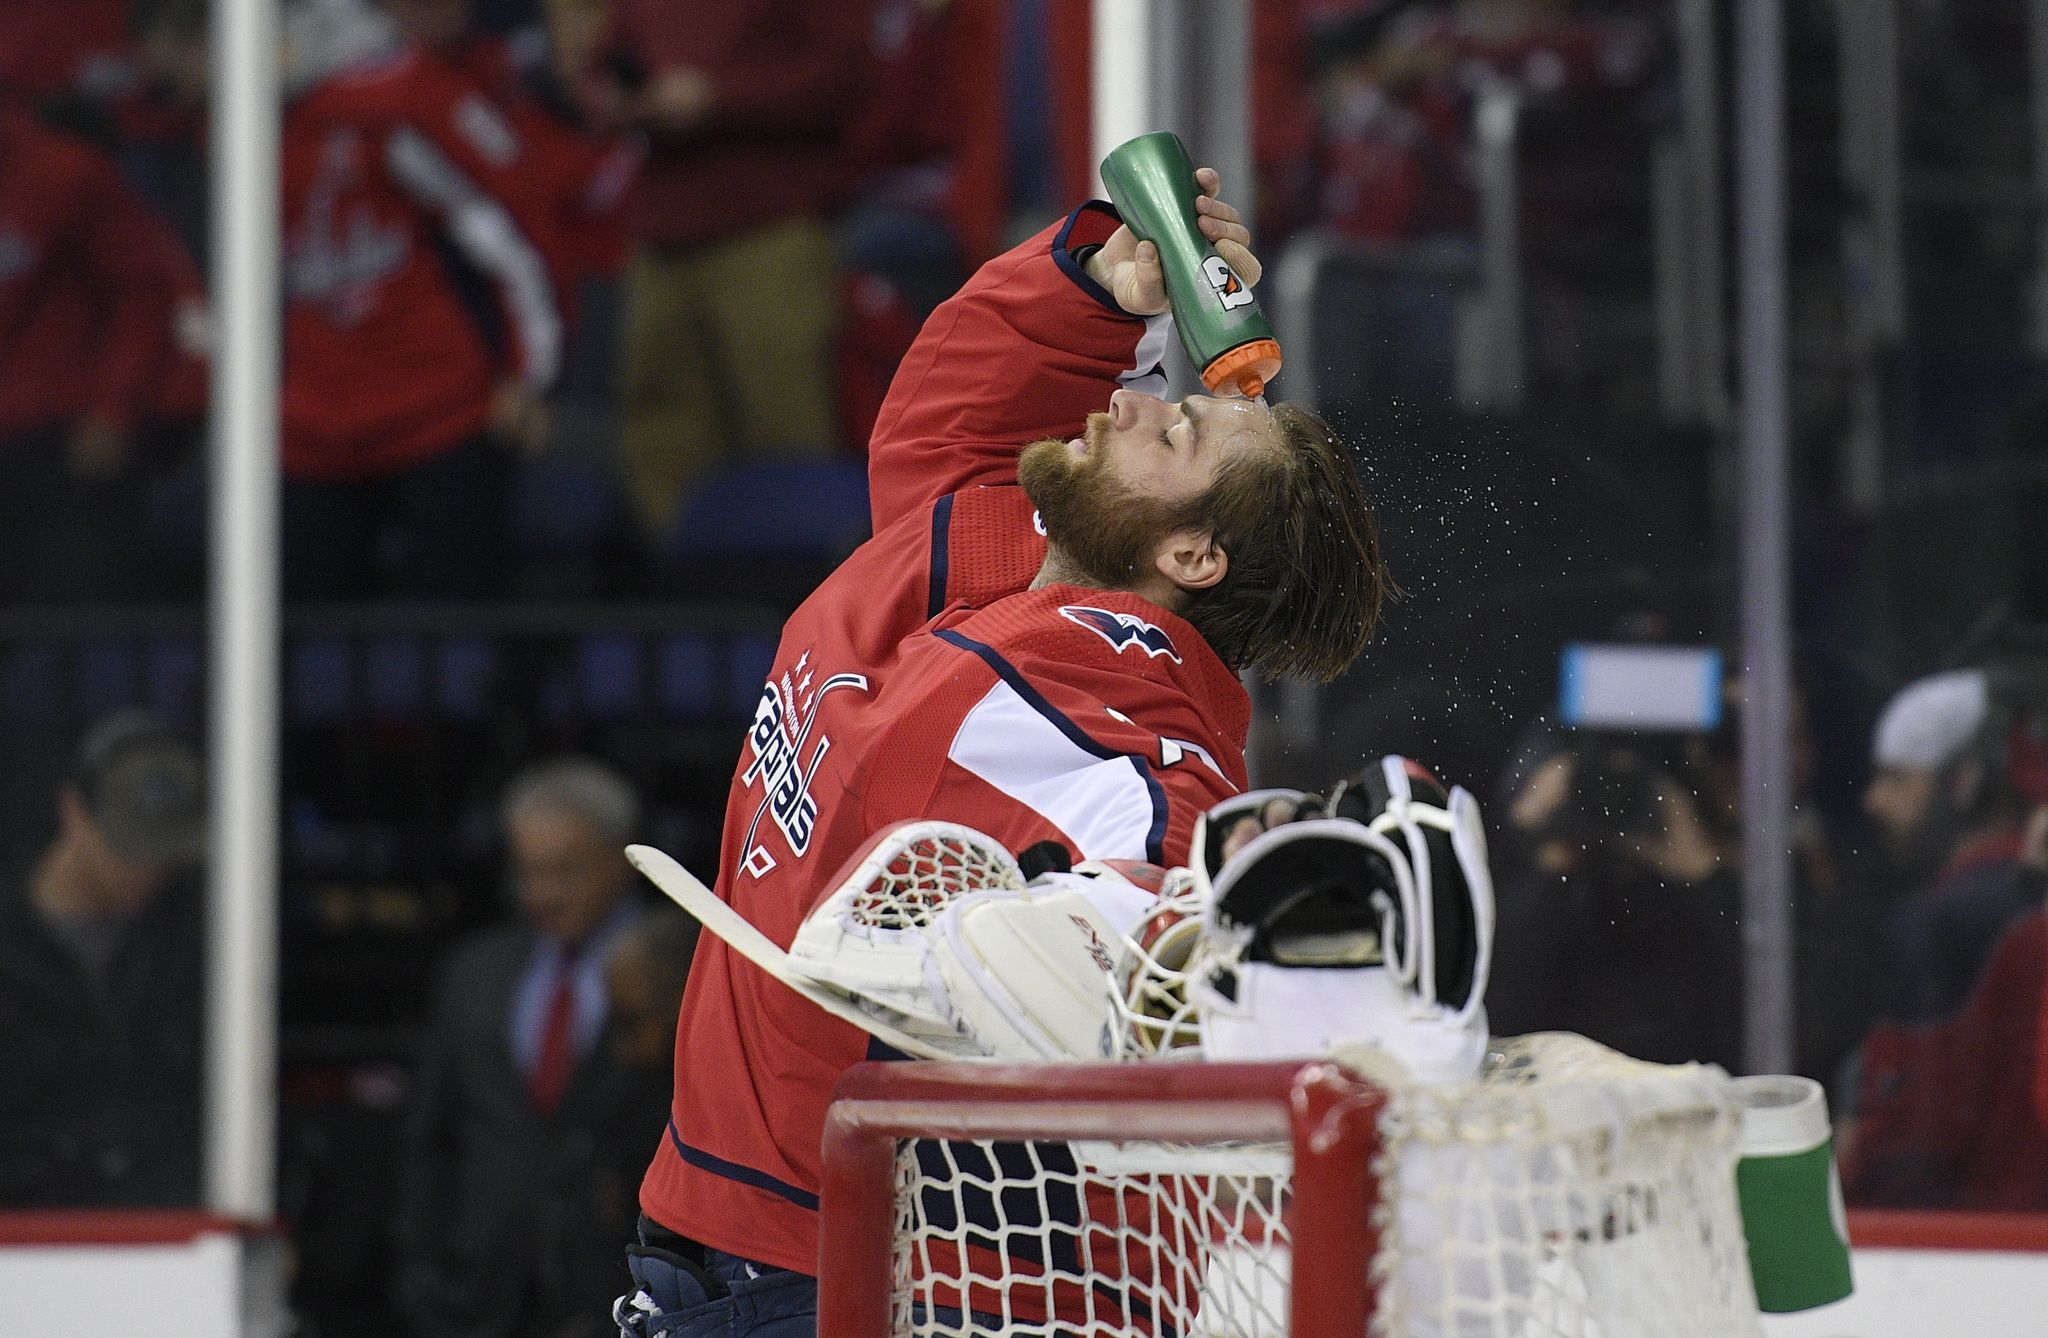 Capitals Game 4 at Penguins: How to watch and what to watch for - Washington Tim...